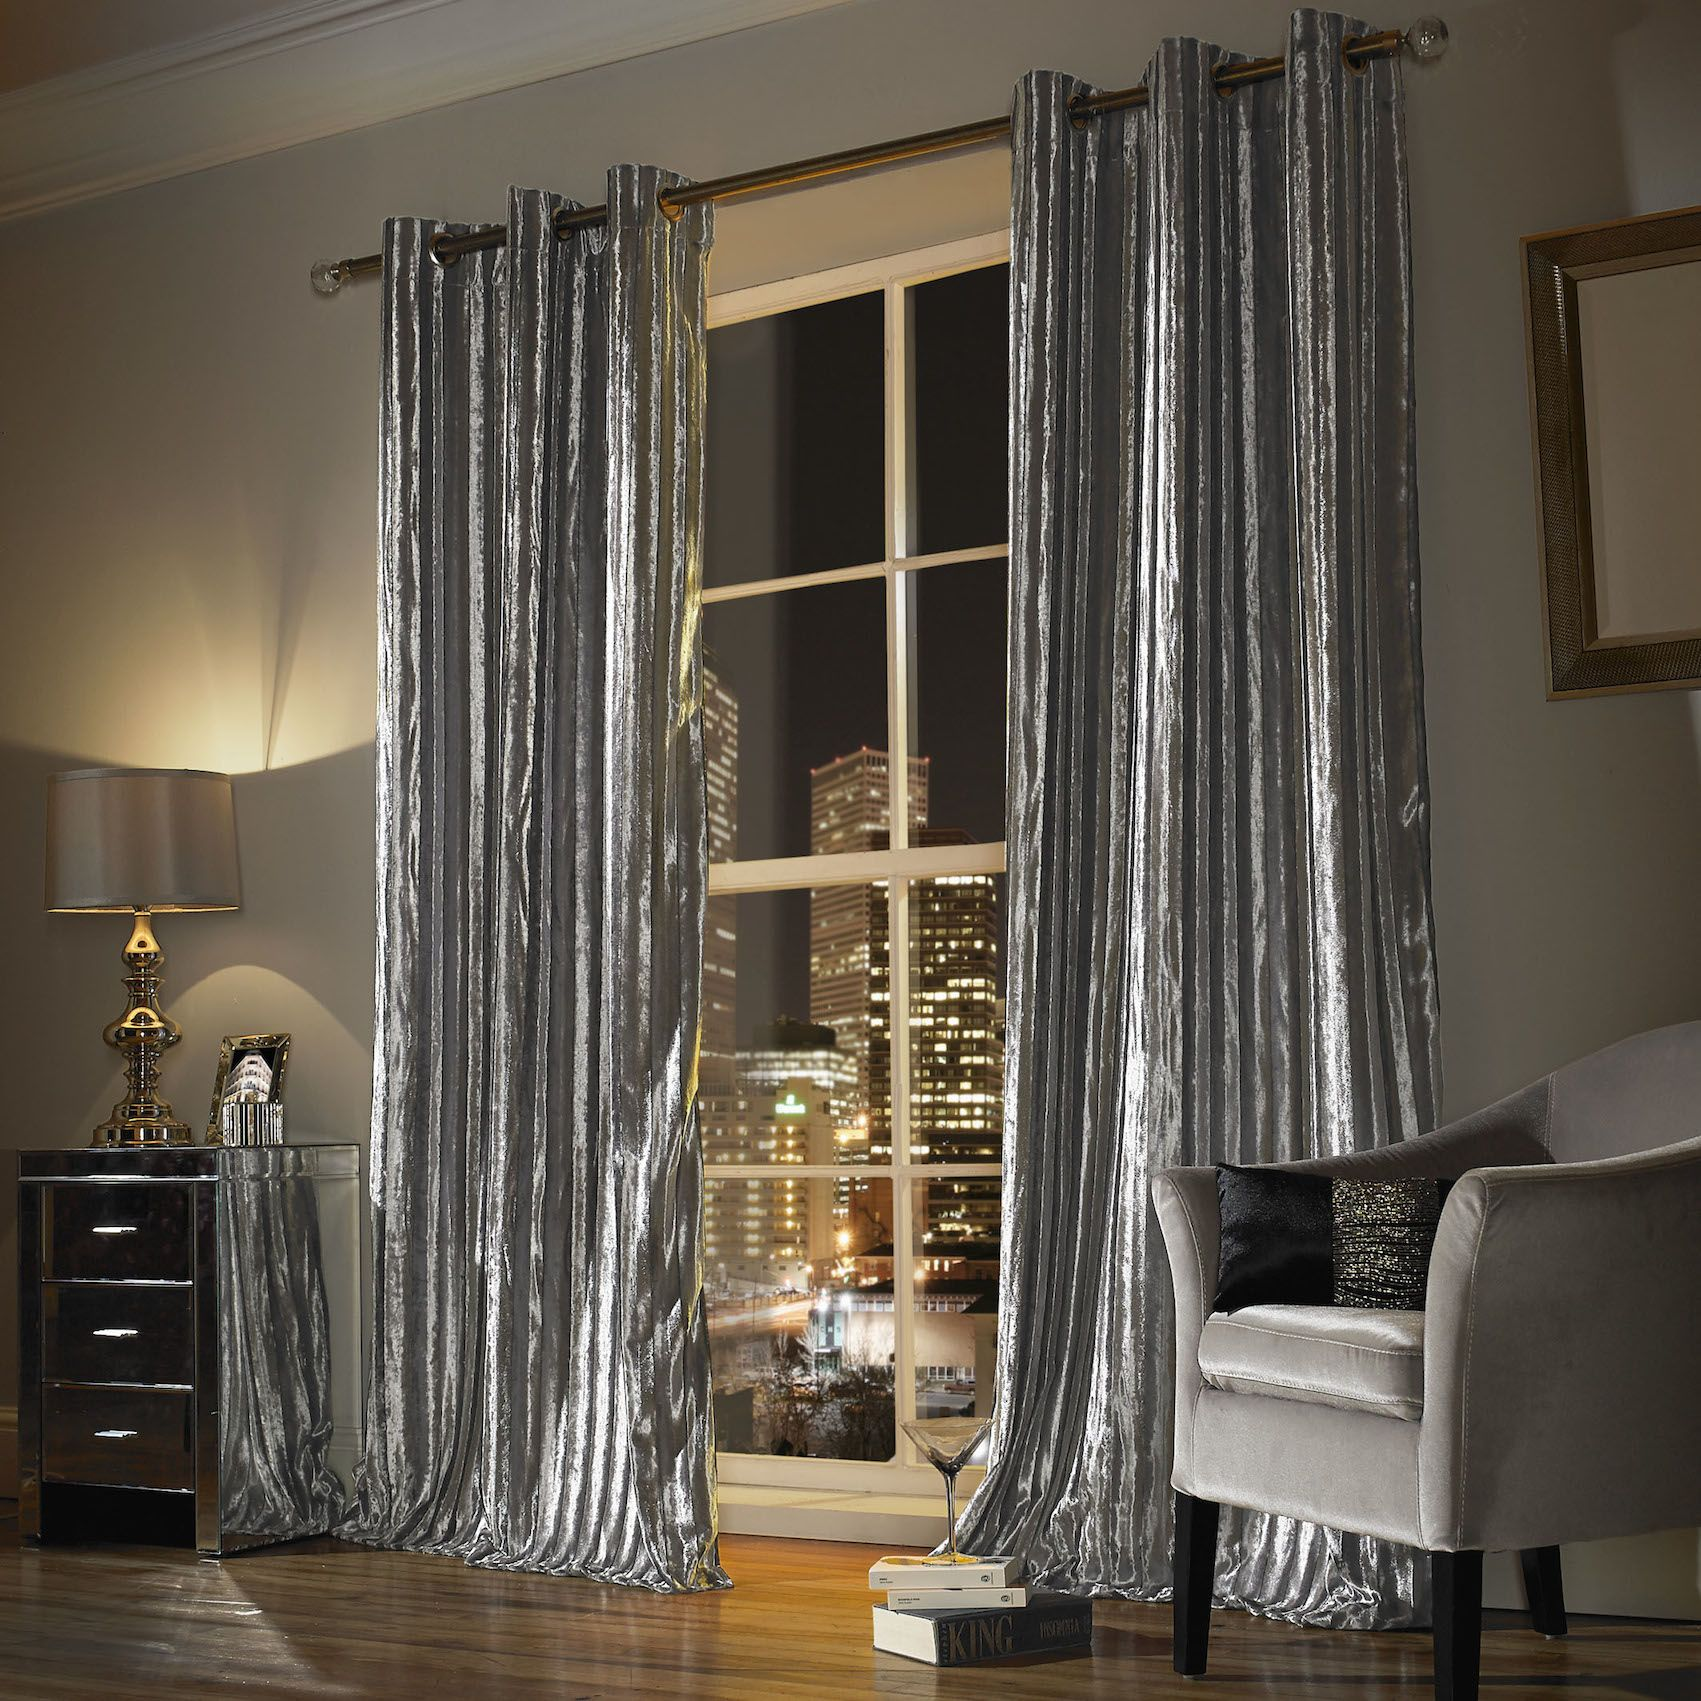 Silver Curtains For Bedroom Iliana Silver Curtains By Kylie Minogue Home Decor Master